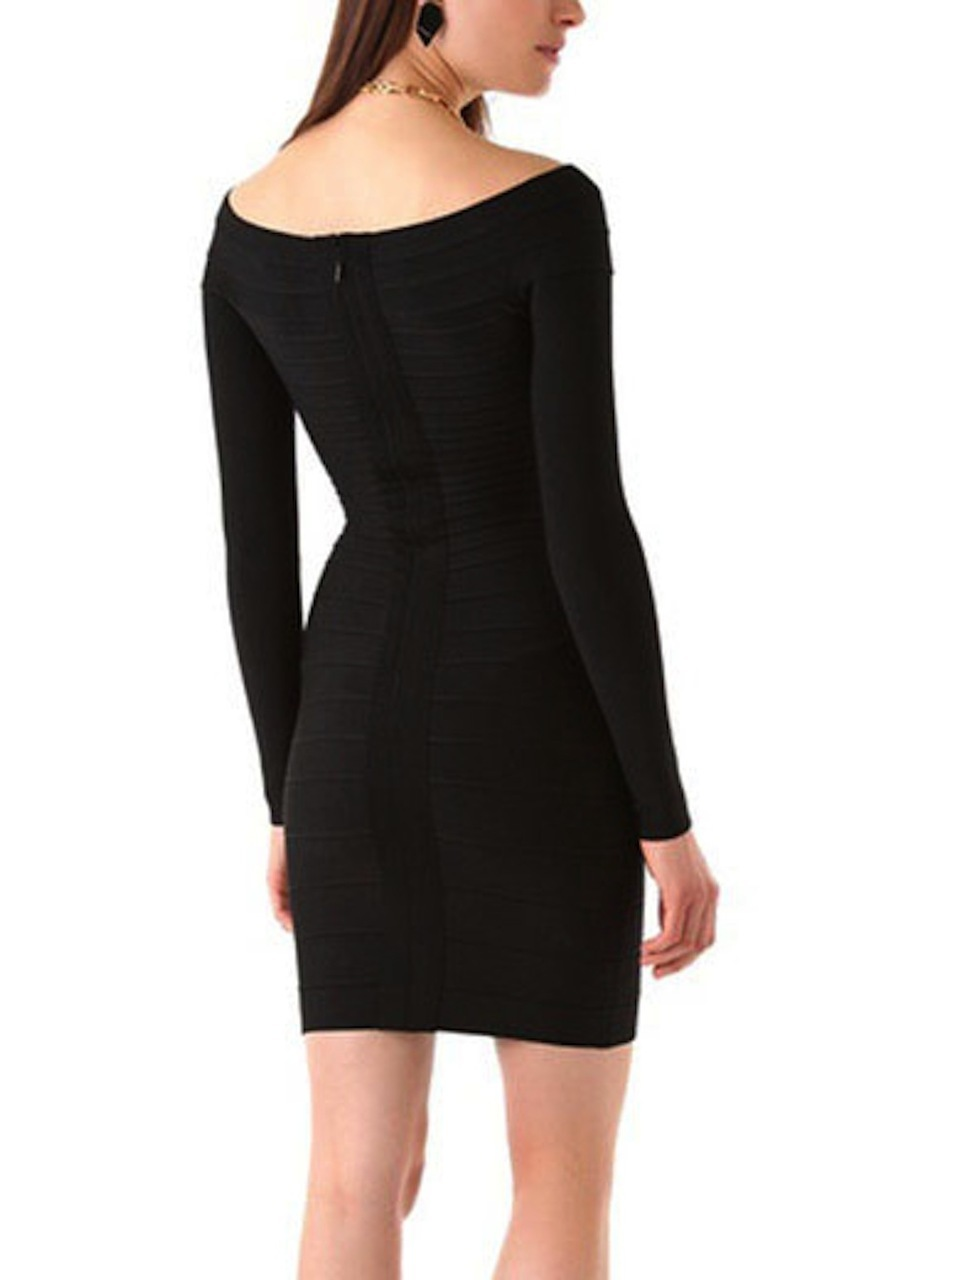 Black Little Off the Shoulder Long Sleeve Bandage Dress